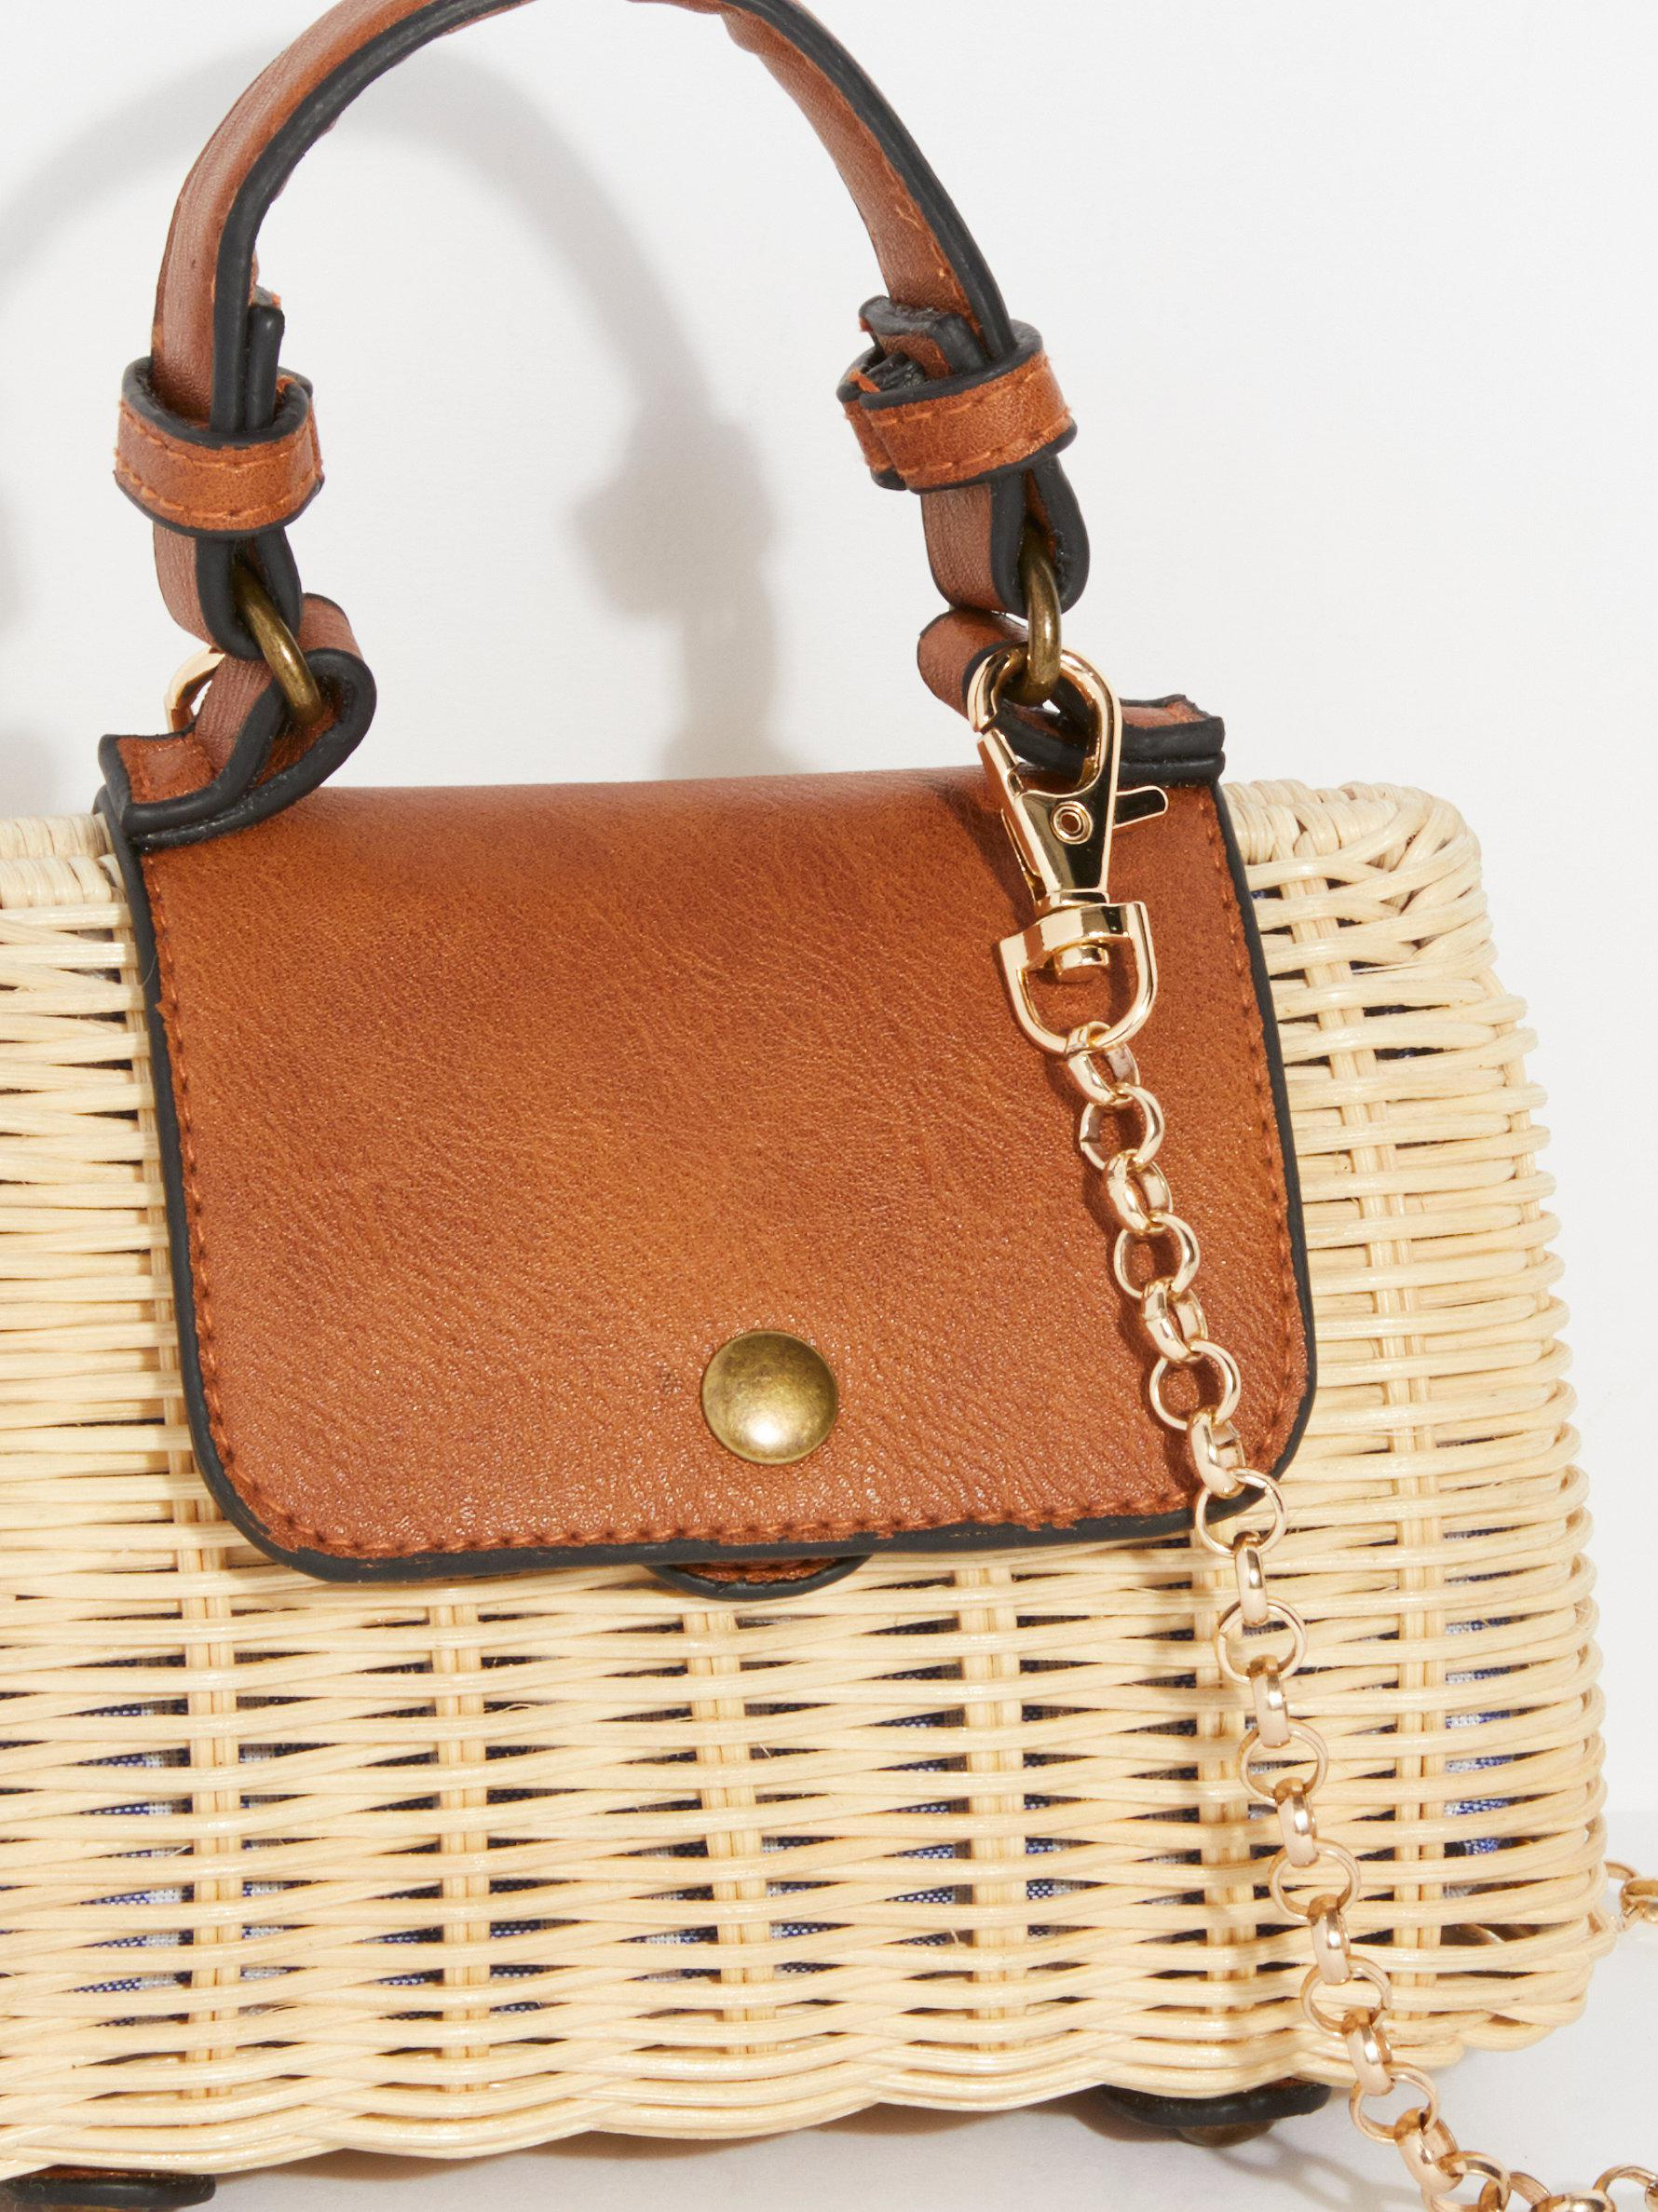 1e0af65b47d Free People Mini Wicker Crossbody Bag in Natural - Lyst